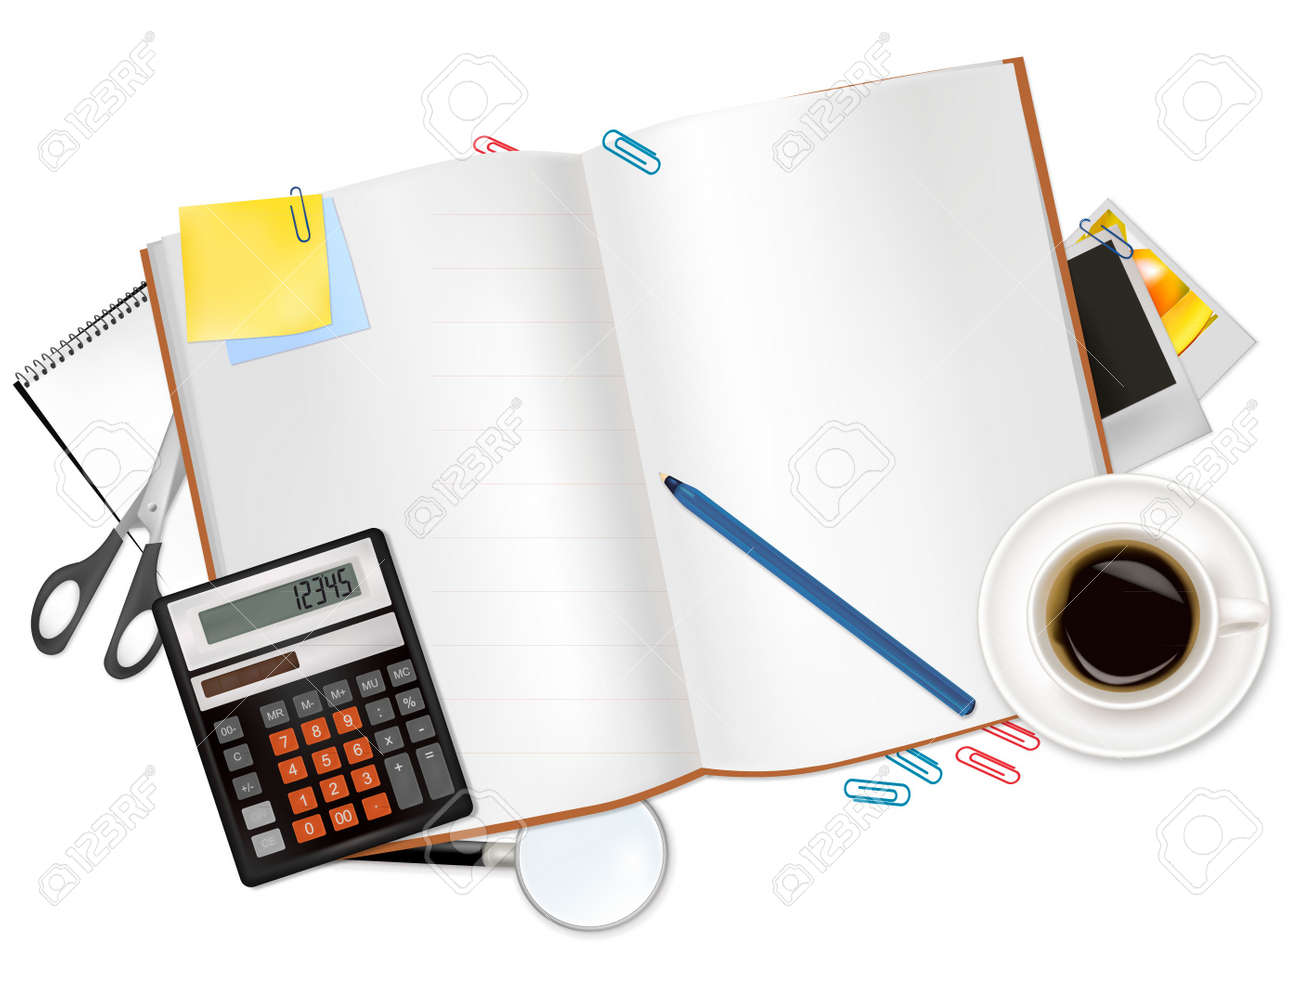 Calculator and office supplies. Stock Vector - 9219165